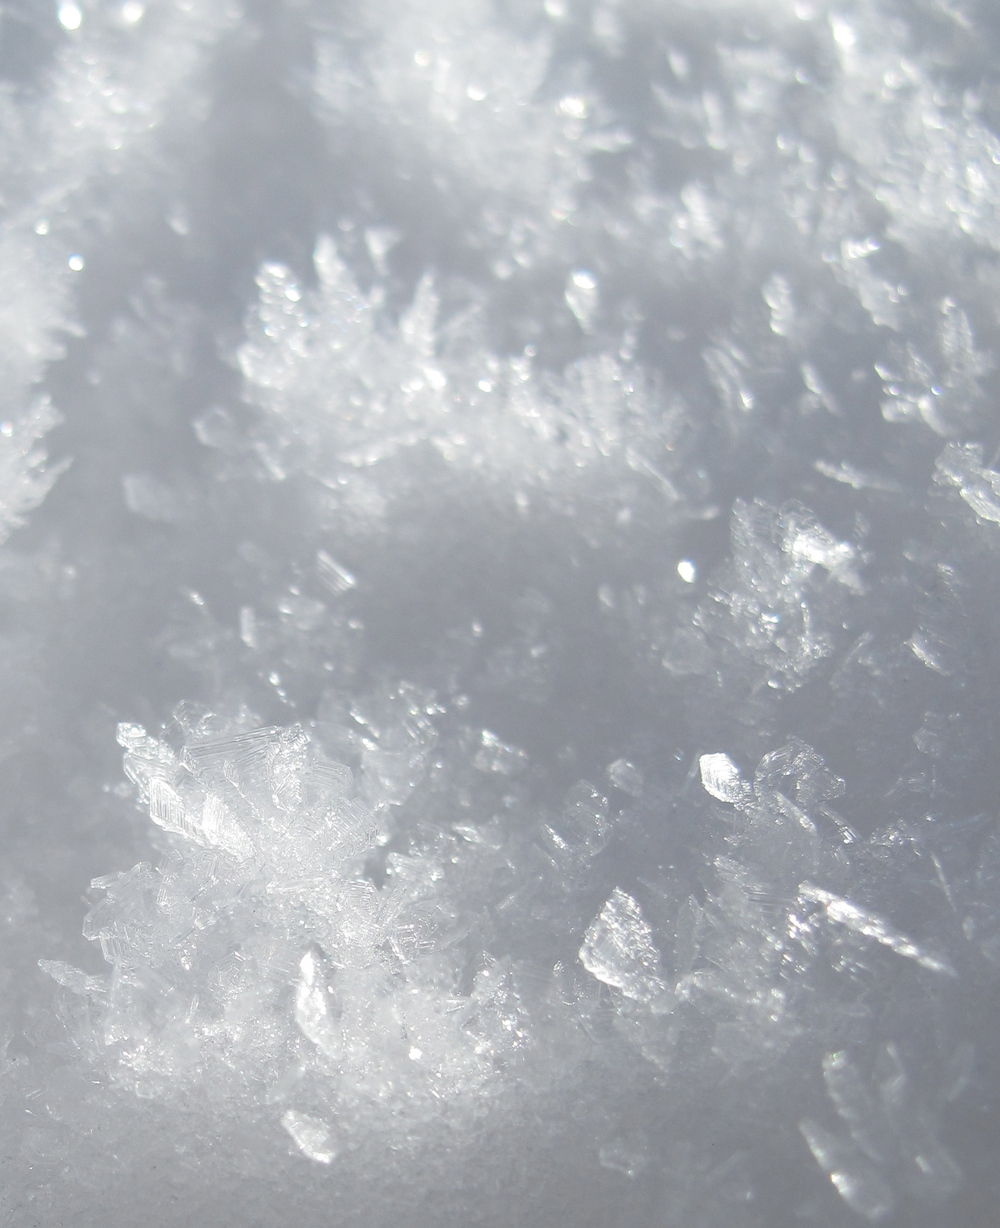 Snow flake crystals in snow.